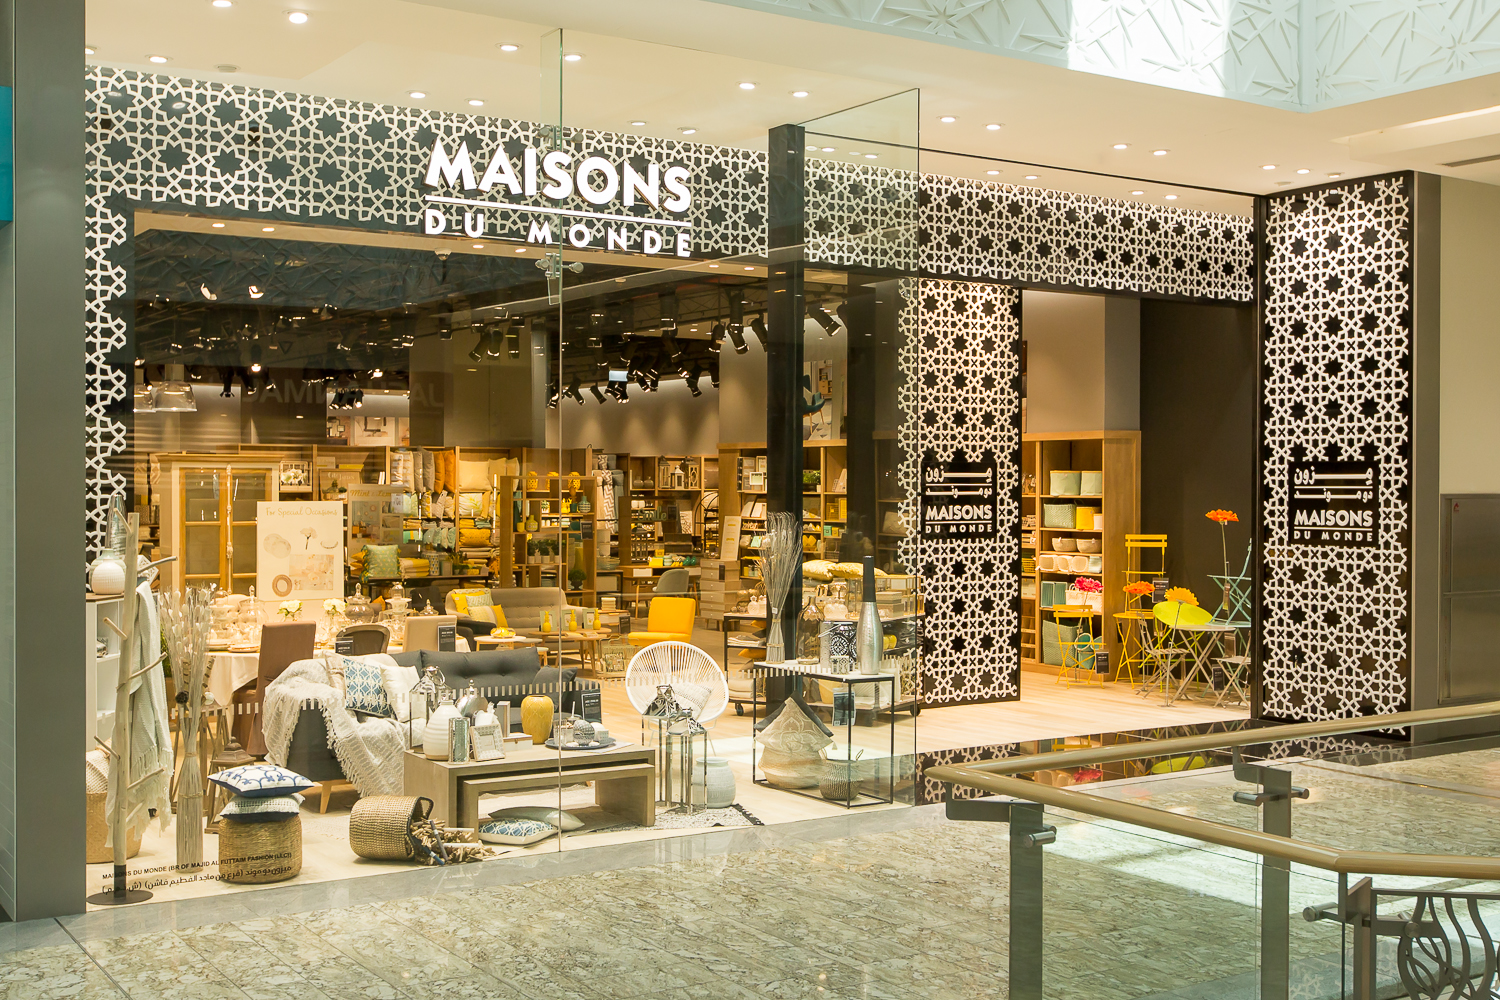 Majid al futtaim fashion enters homeware space with maisons du monde future of retail business - Maison du monde gardinen ...